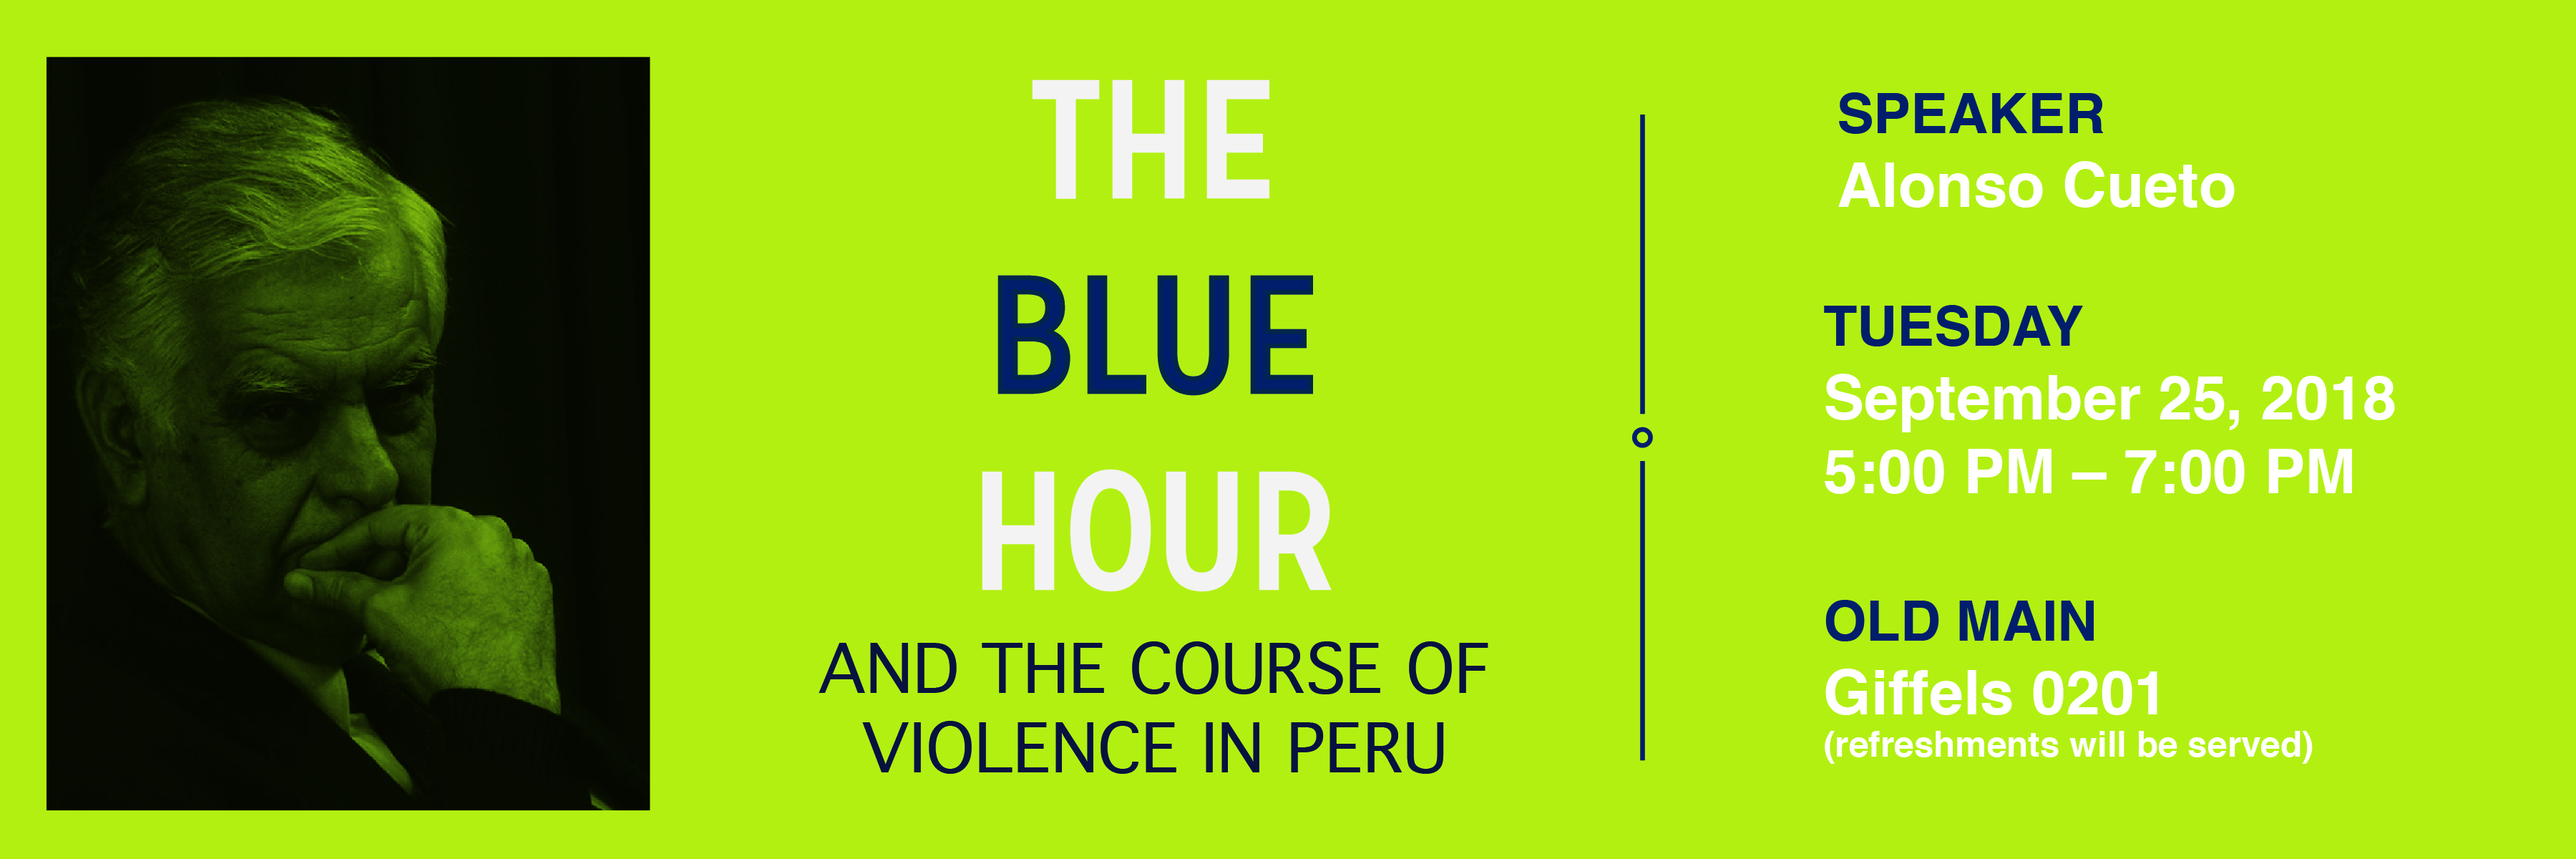 The Blue Hour and the Course of Violence in Peru | Speaker Alonso Cueto | Tuesday September 25, 2018; 5:00pm - 7:00pm; Old Main Giffels 0201 (refreshments will be served)